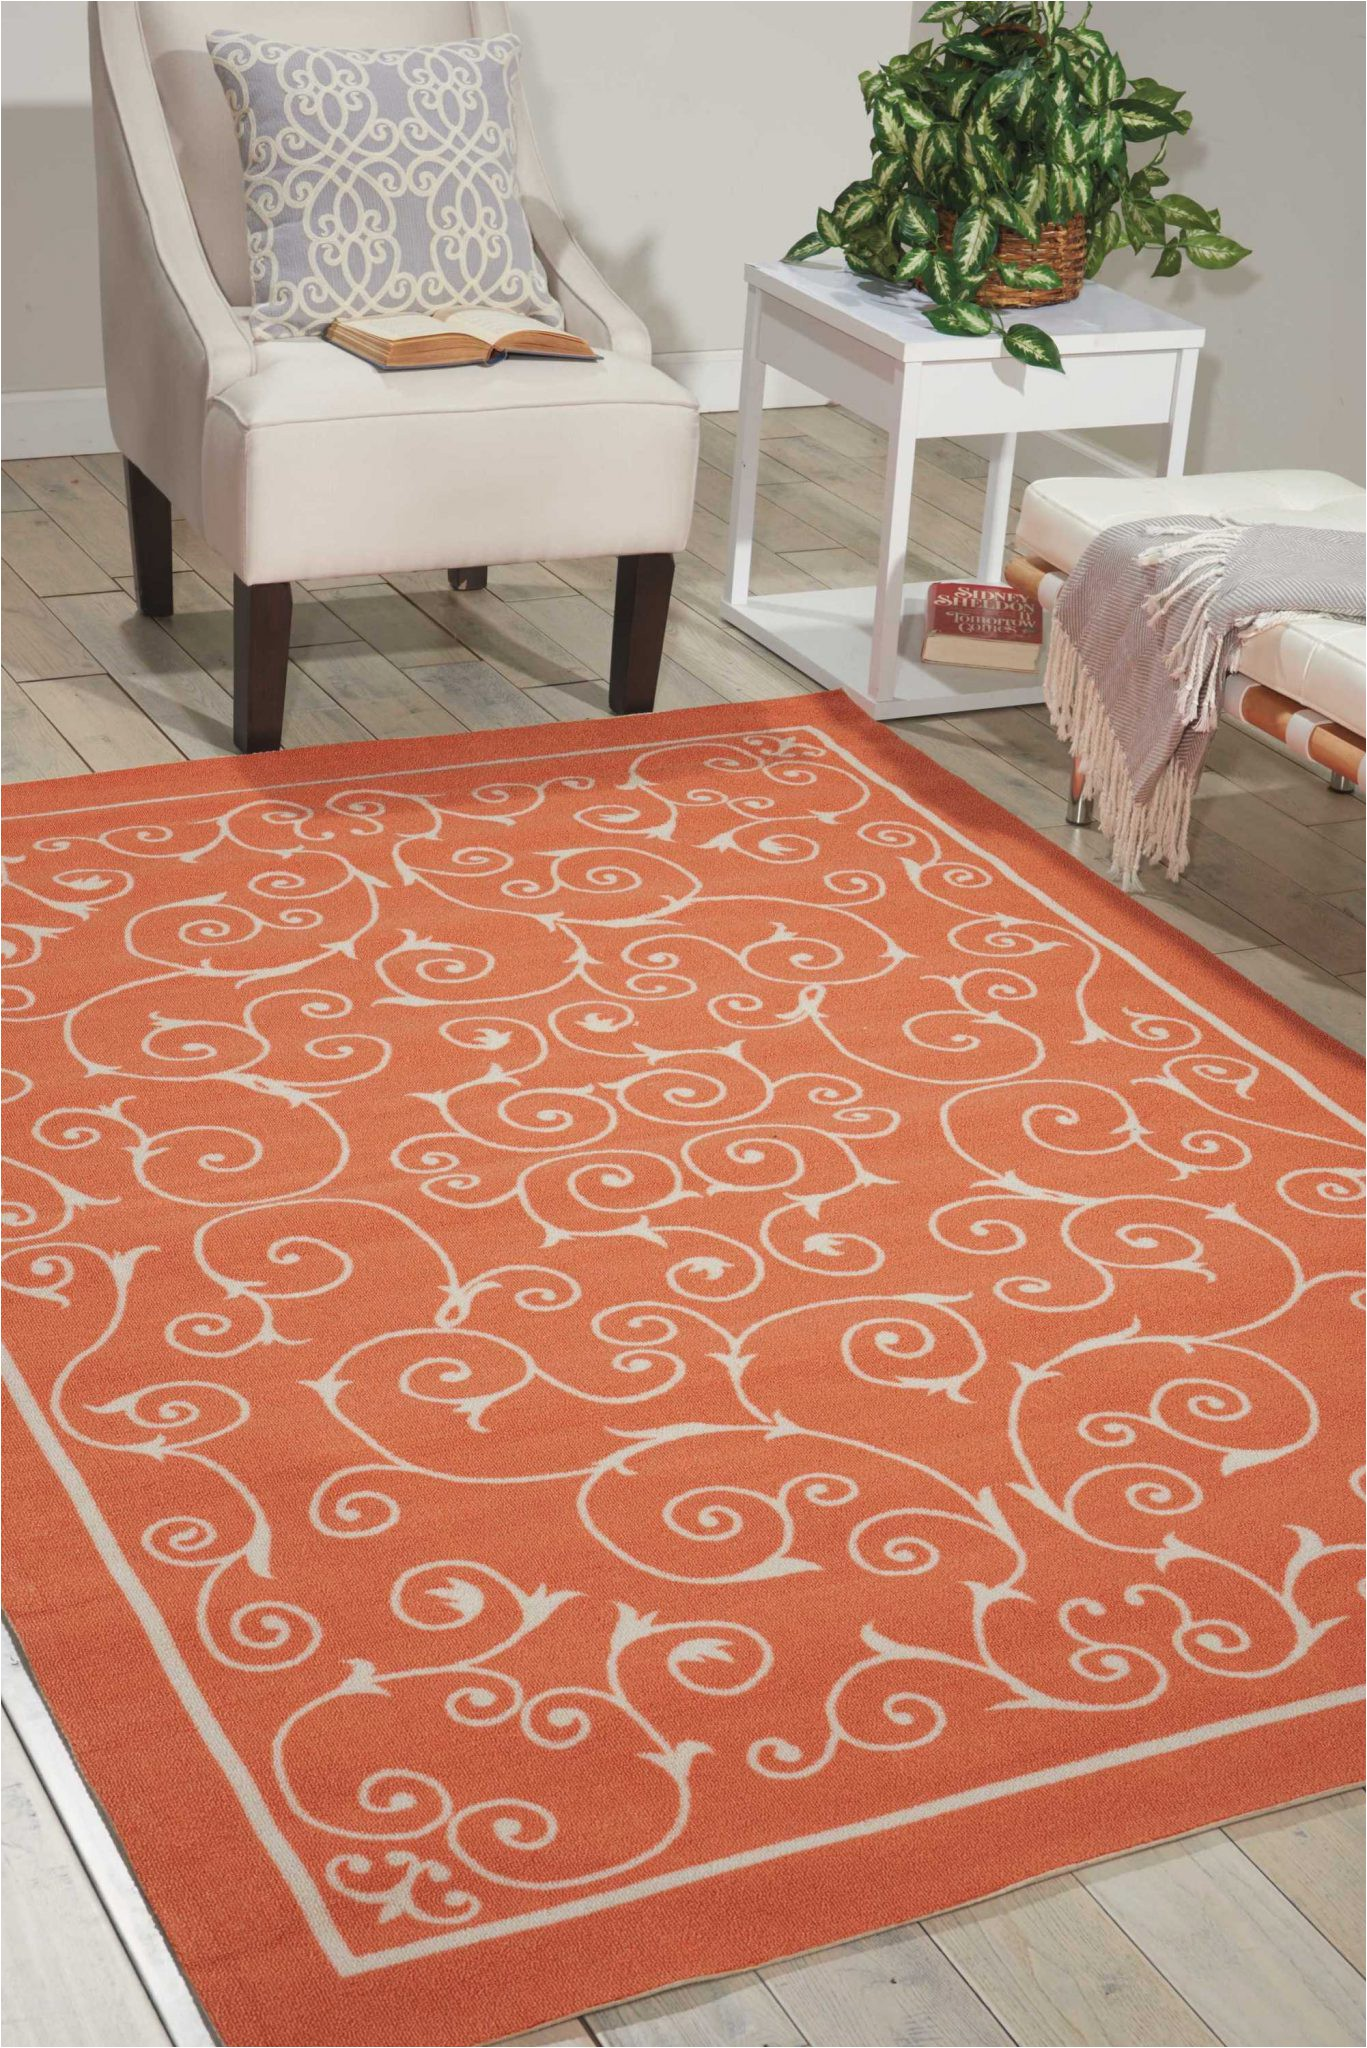 Home and Garden area Rugs Nourison Home & Garden Rs019 orange area Rug